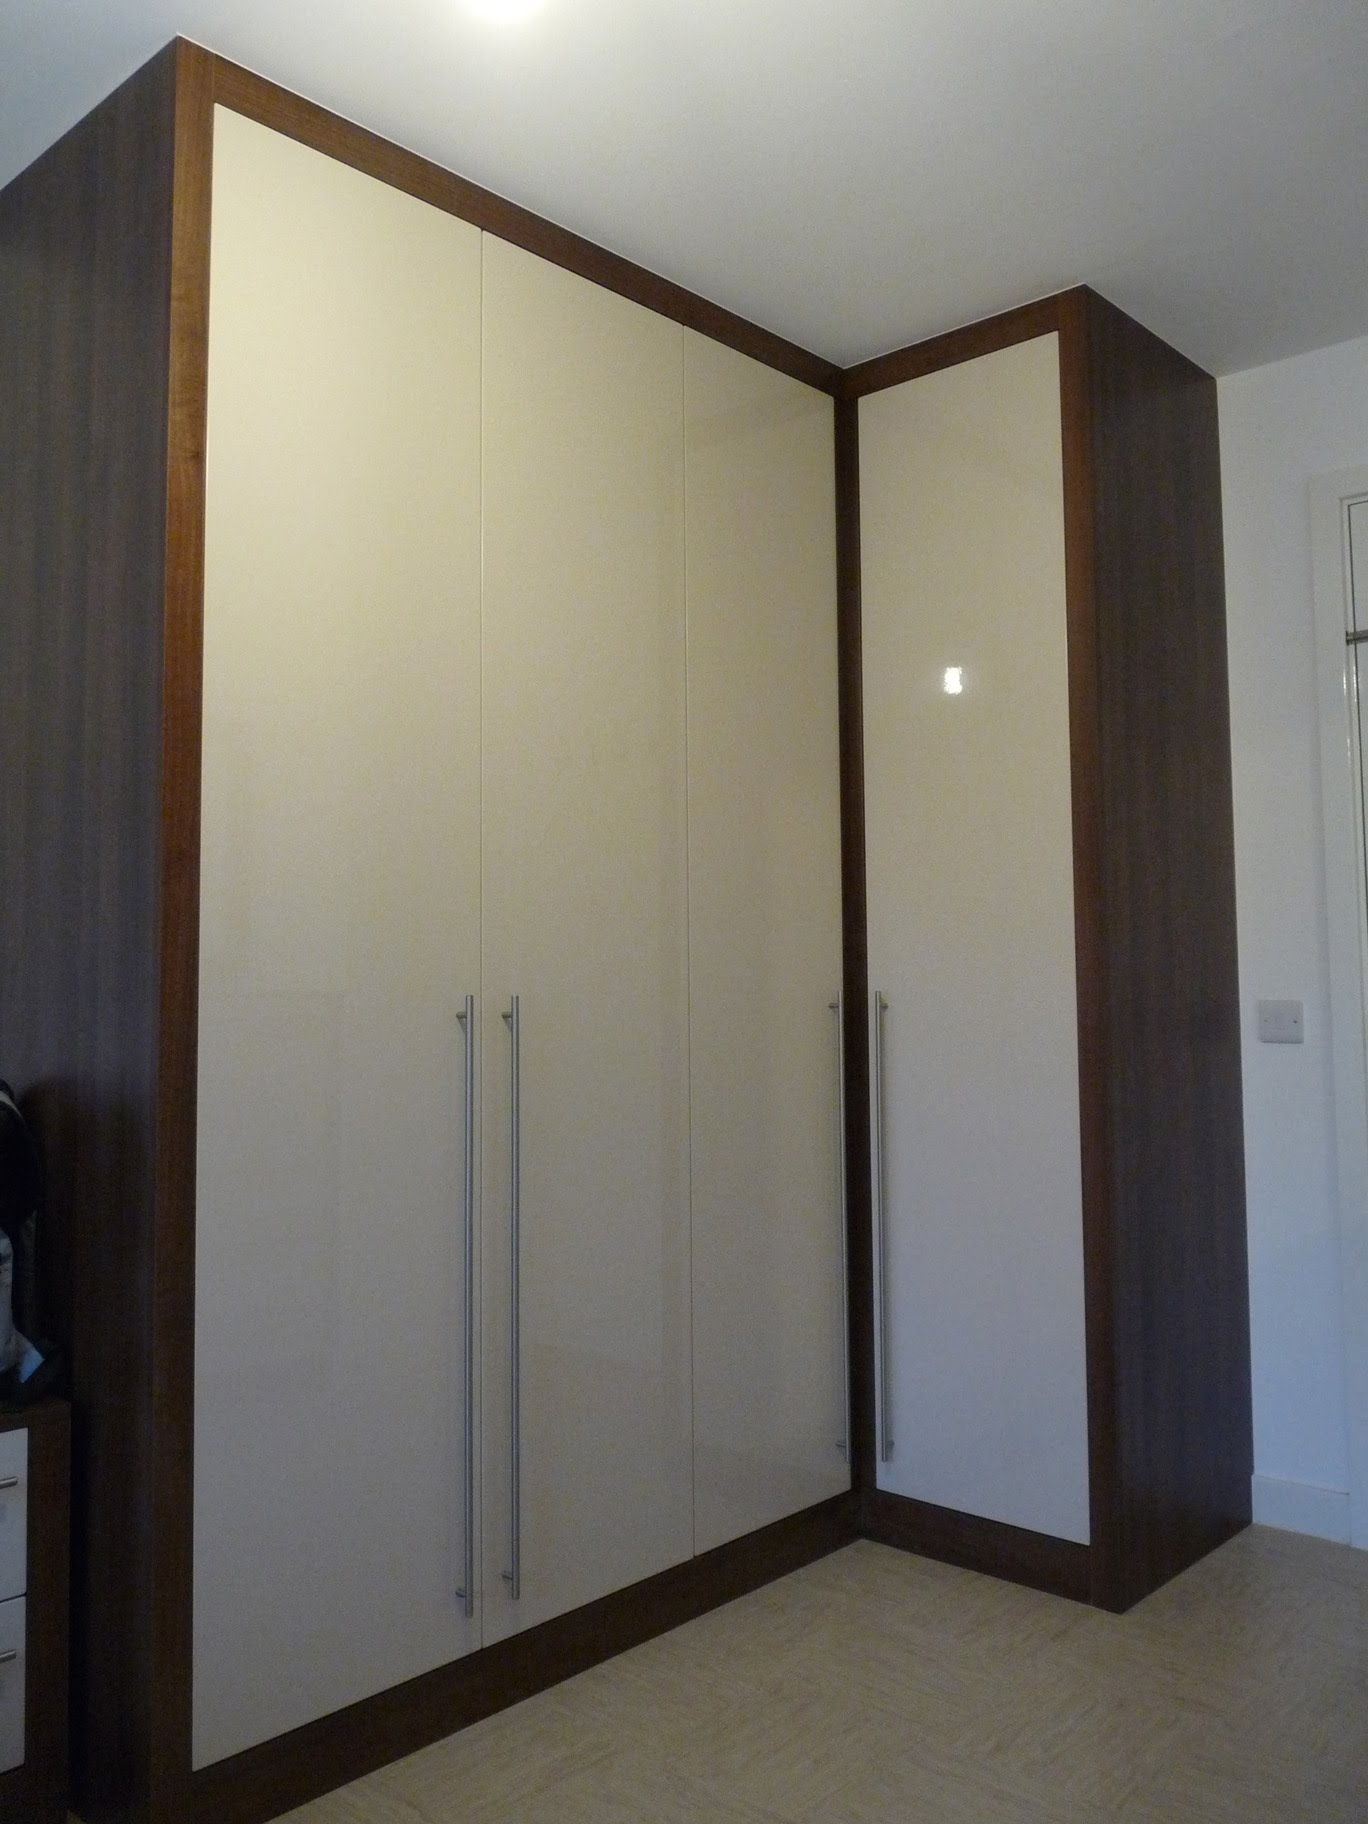 Bespoke Fitted Wardrobes Chunky Frame Dark Walnut Sand Stone Throughout Dark Wardrobes (Image 6 of 15)